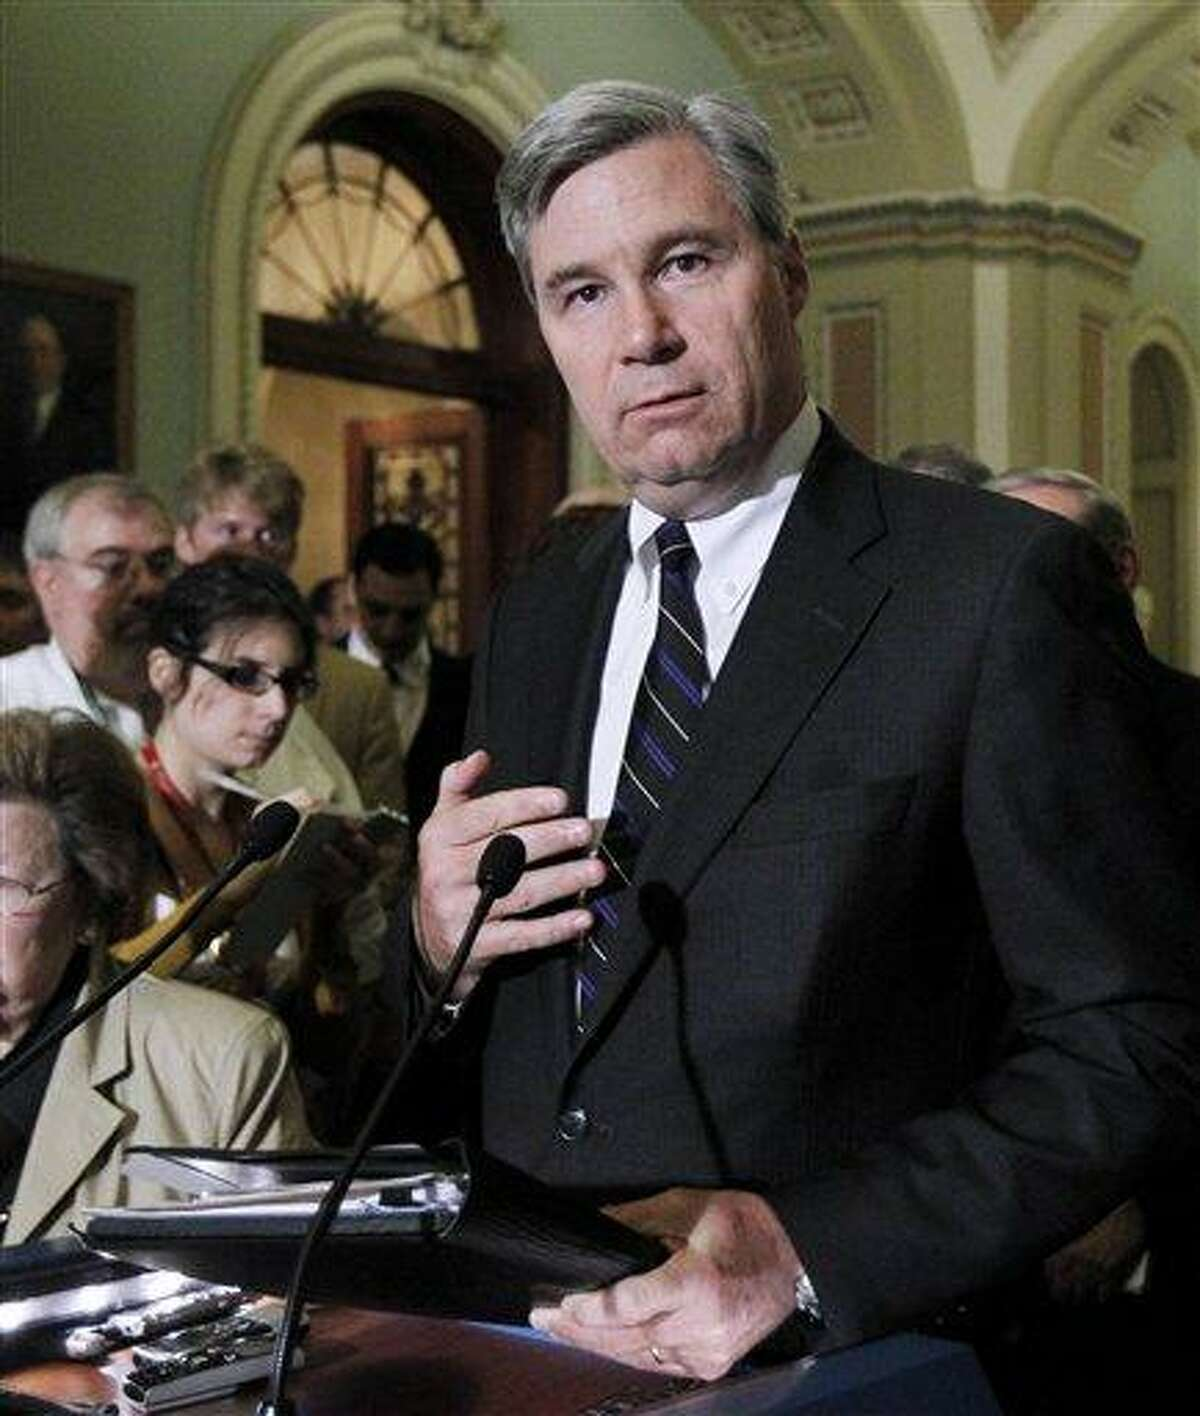 """In this photo taken June 29, 2011, photo Sen. Sheldon Whitehouse, D-R.I., speaks to reporters on Capitol Hill in Washington. Whitehouse is among a small group in the Senate pushing campaign finance reform measures that would force outside groups to disclose their donors. The Internal Revenue Service has endured withering criticism for its scrutiny of conservative political groups during the 2012 elections. """"The IRS goes AWOL when wealthy and powerful forces want to break the law in order to hide their wrongful efforts and secret political influence,"""" he says. """"Picking on the little guy is a pretty lousy thing to do."""" (AP Photo/Manuel Balce Ceneta)"""